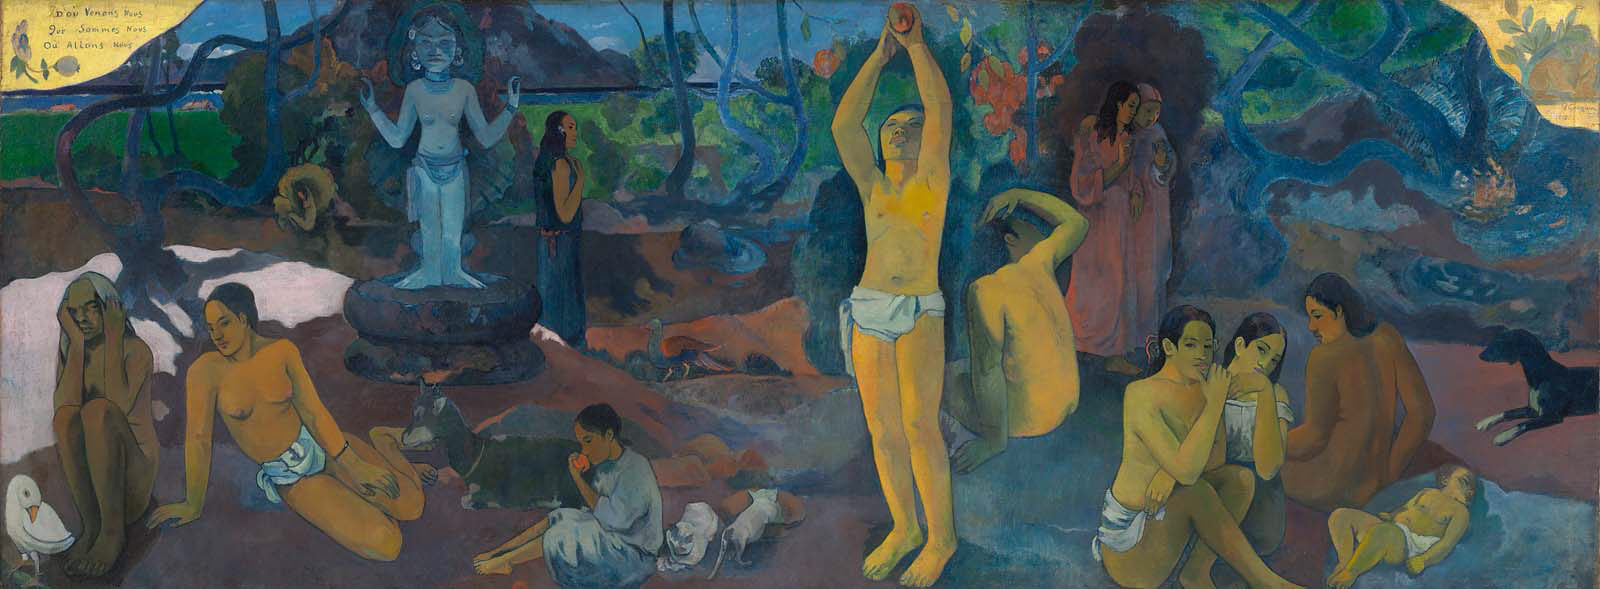 Paul Gauguin, Where Do We Come From? What Are We? Where Are We Going? 1897-98. Collection of the Museum of Fine Arts, Boston